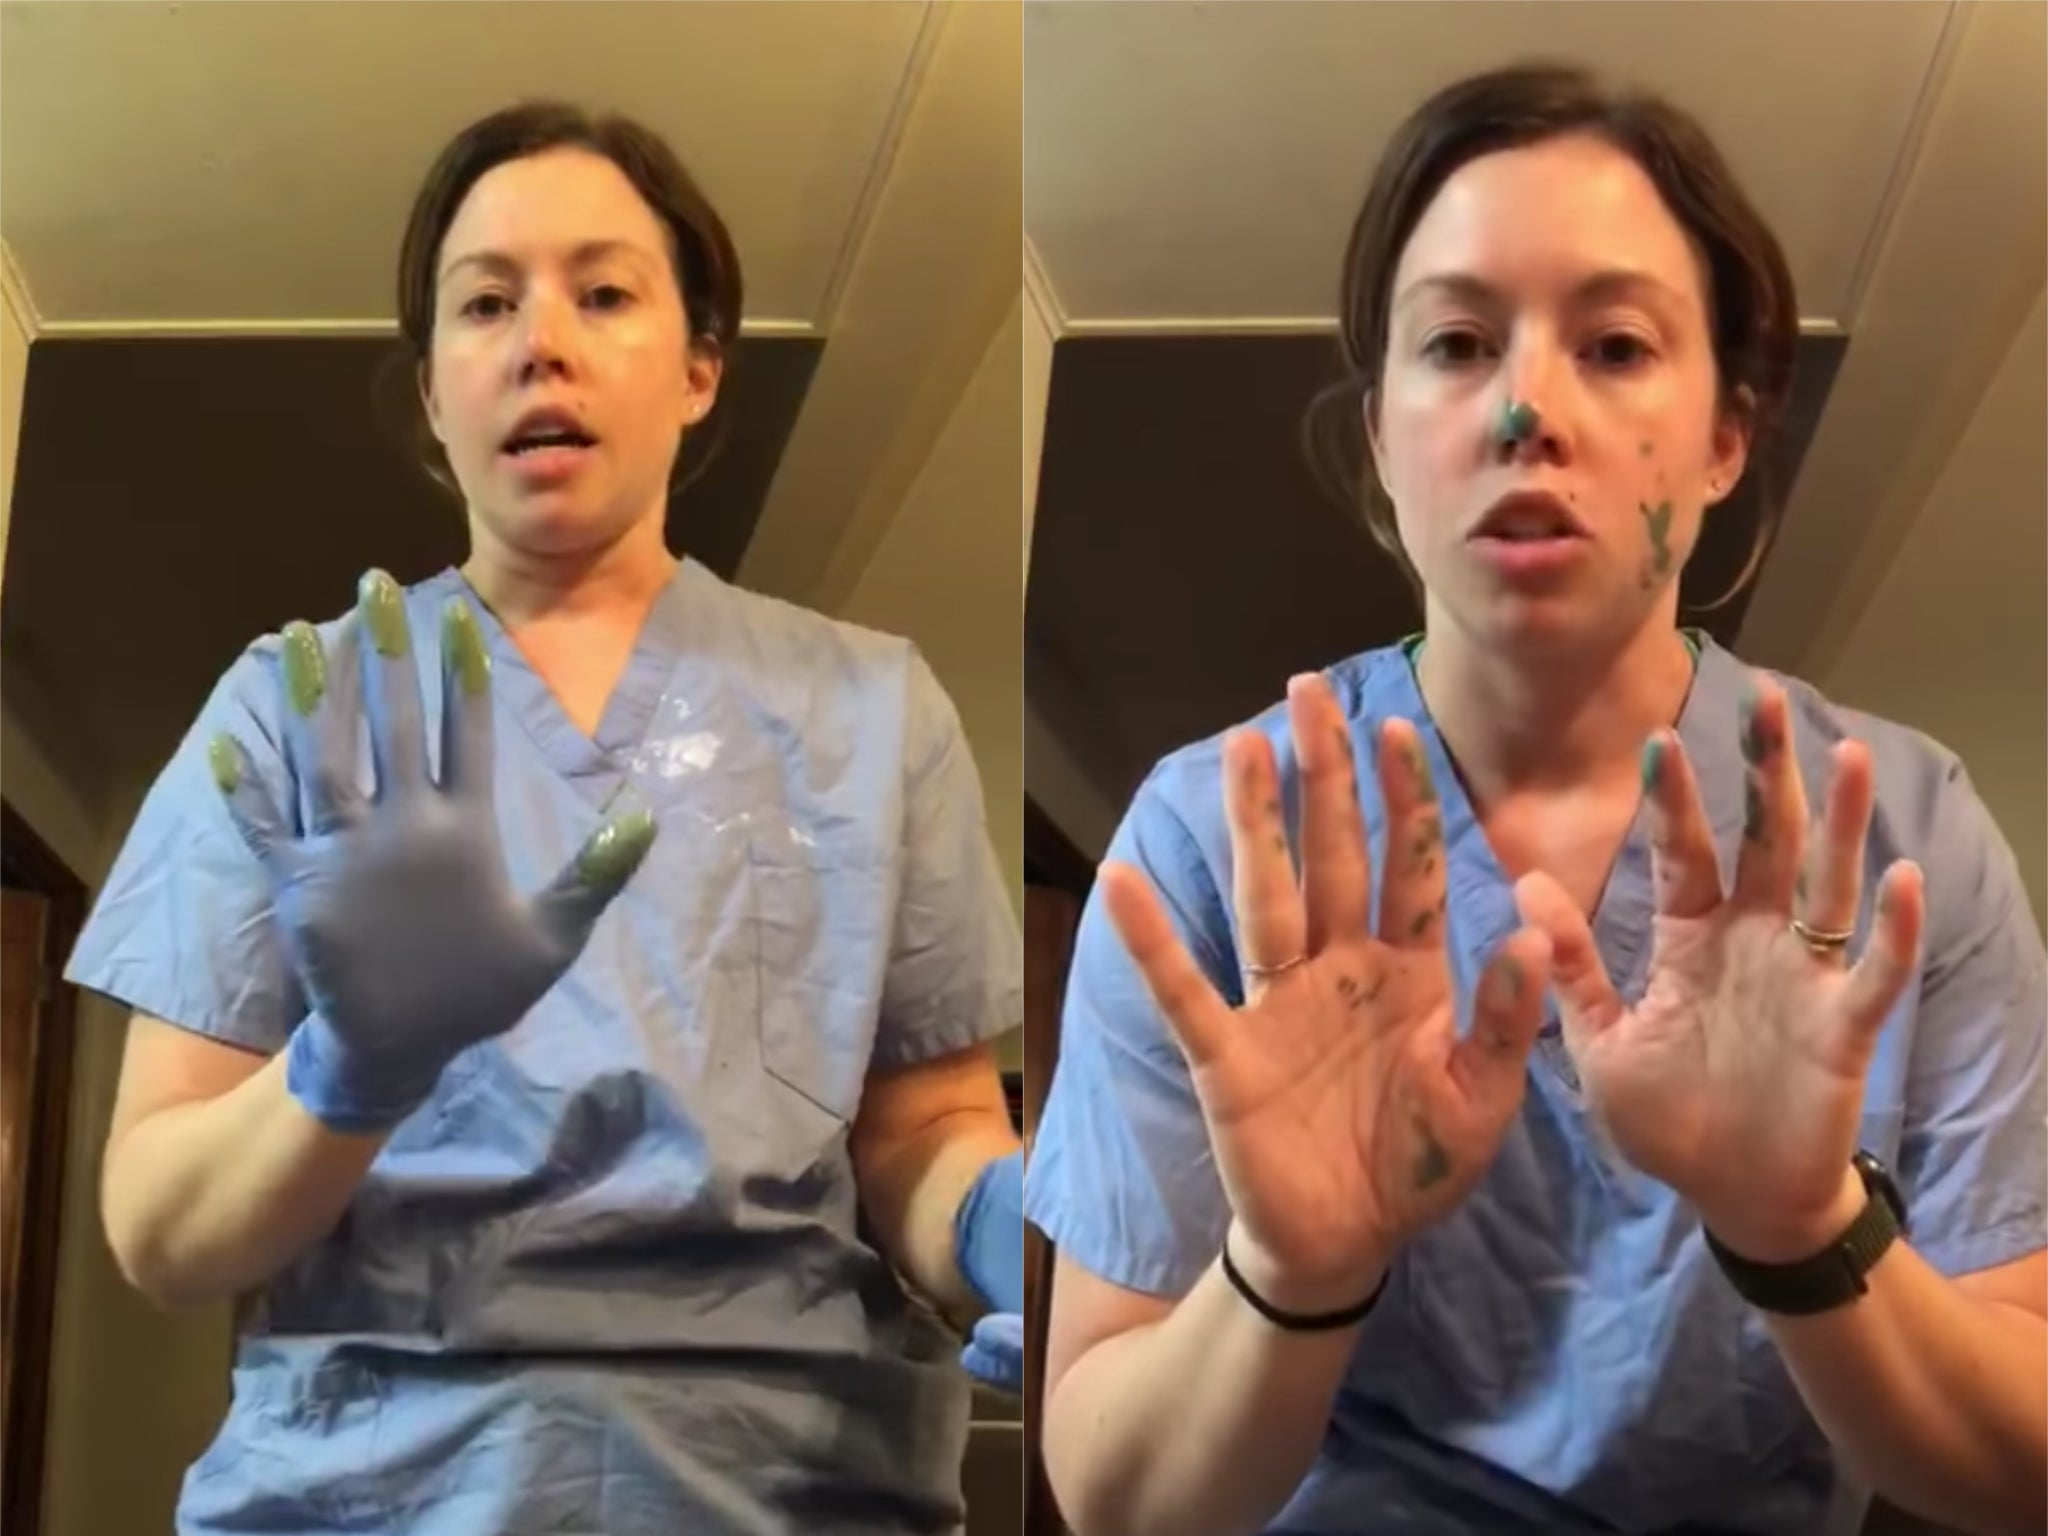 Coronavirus: Nurse demonstrates how wearing gloves can cause cross-contamination of germs